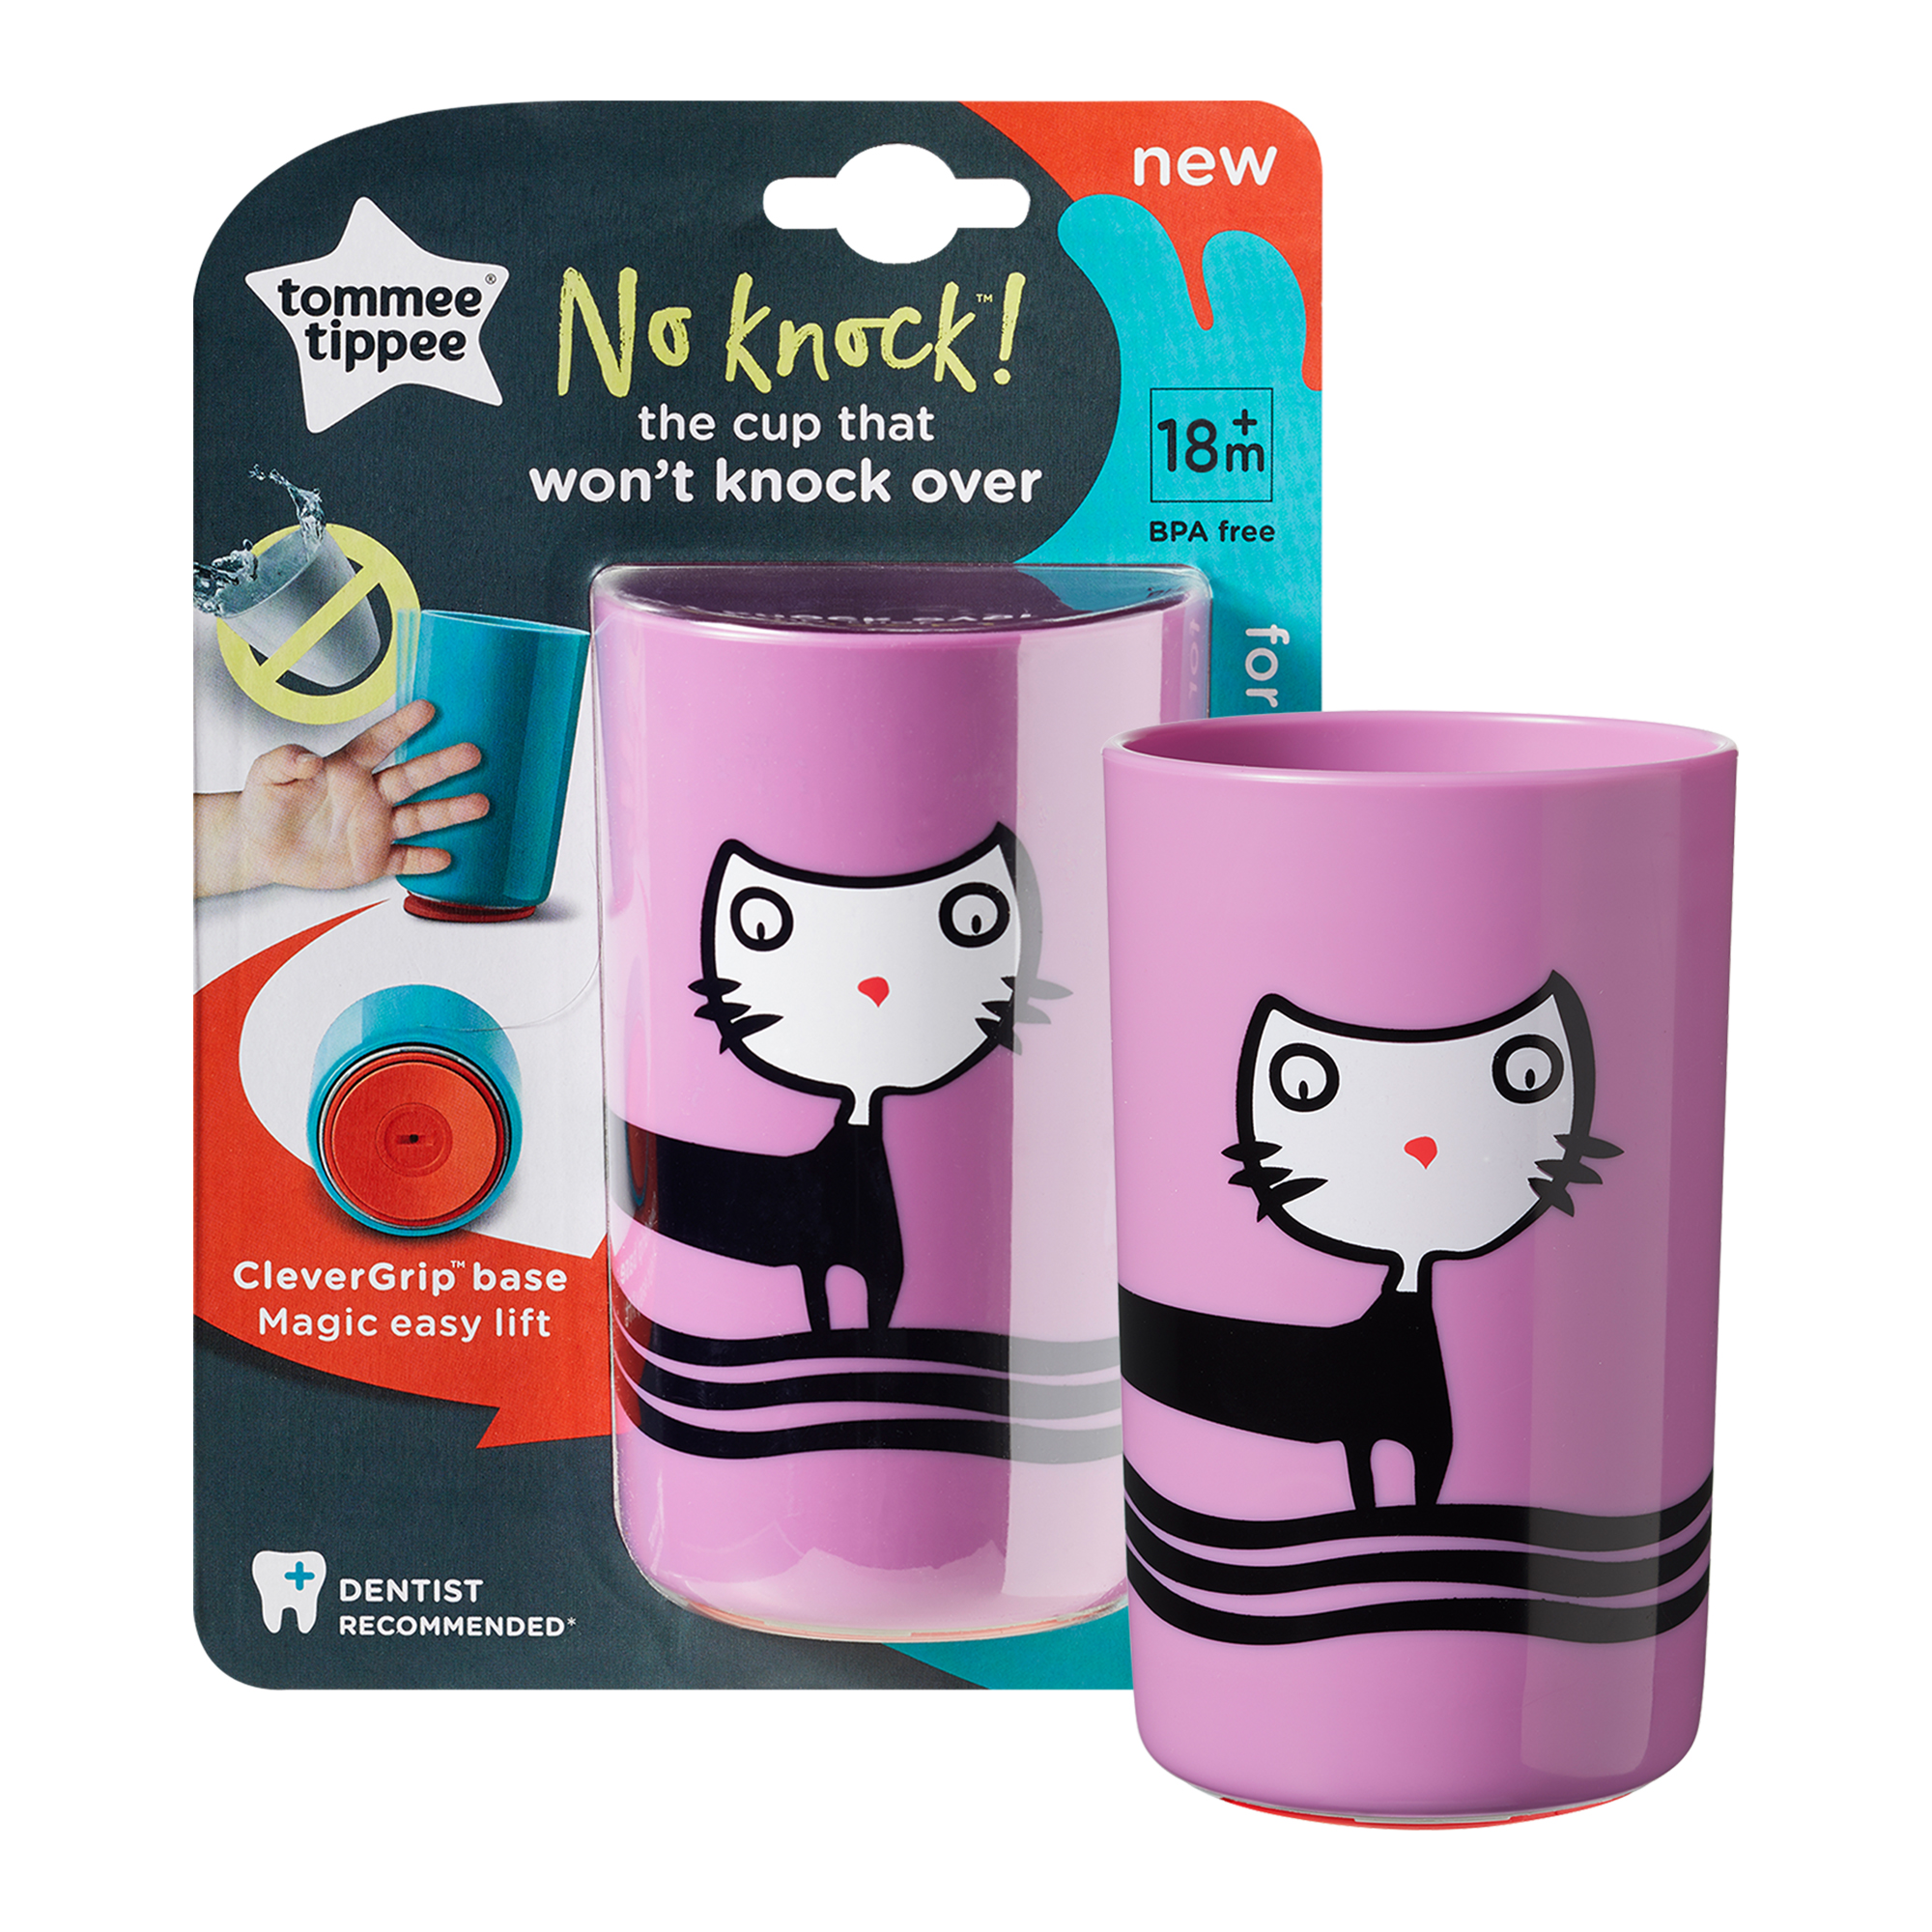 Cana No Knock Large, Tommee Tippee, 300 ml, Pisicuta Roz